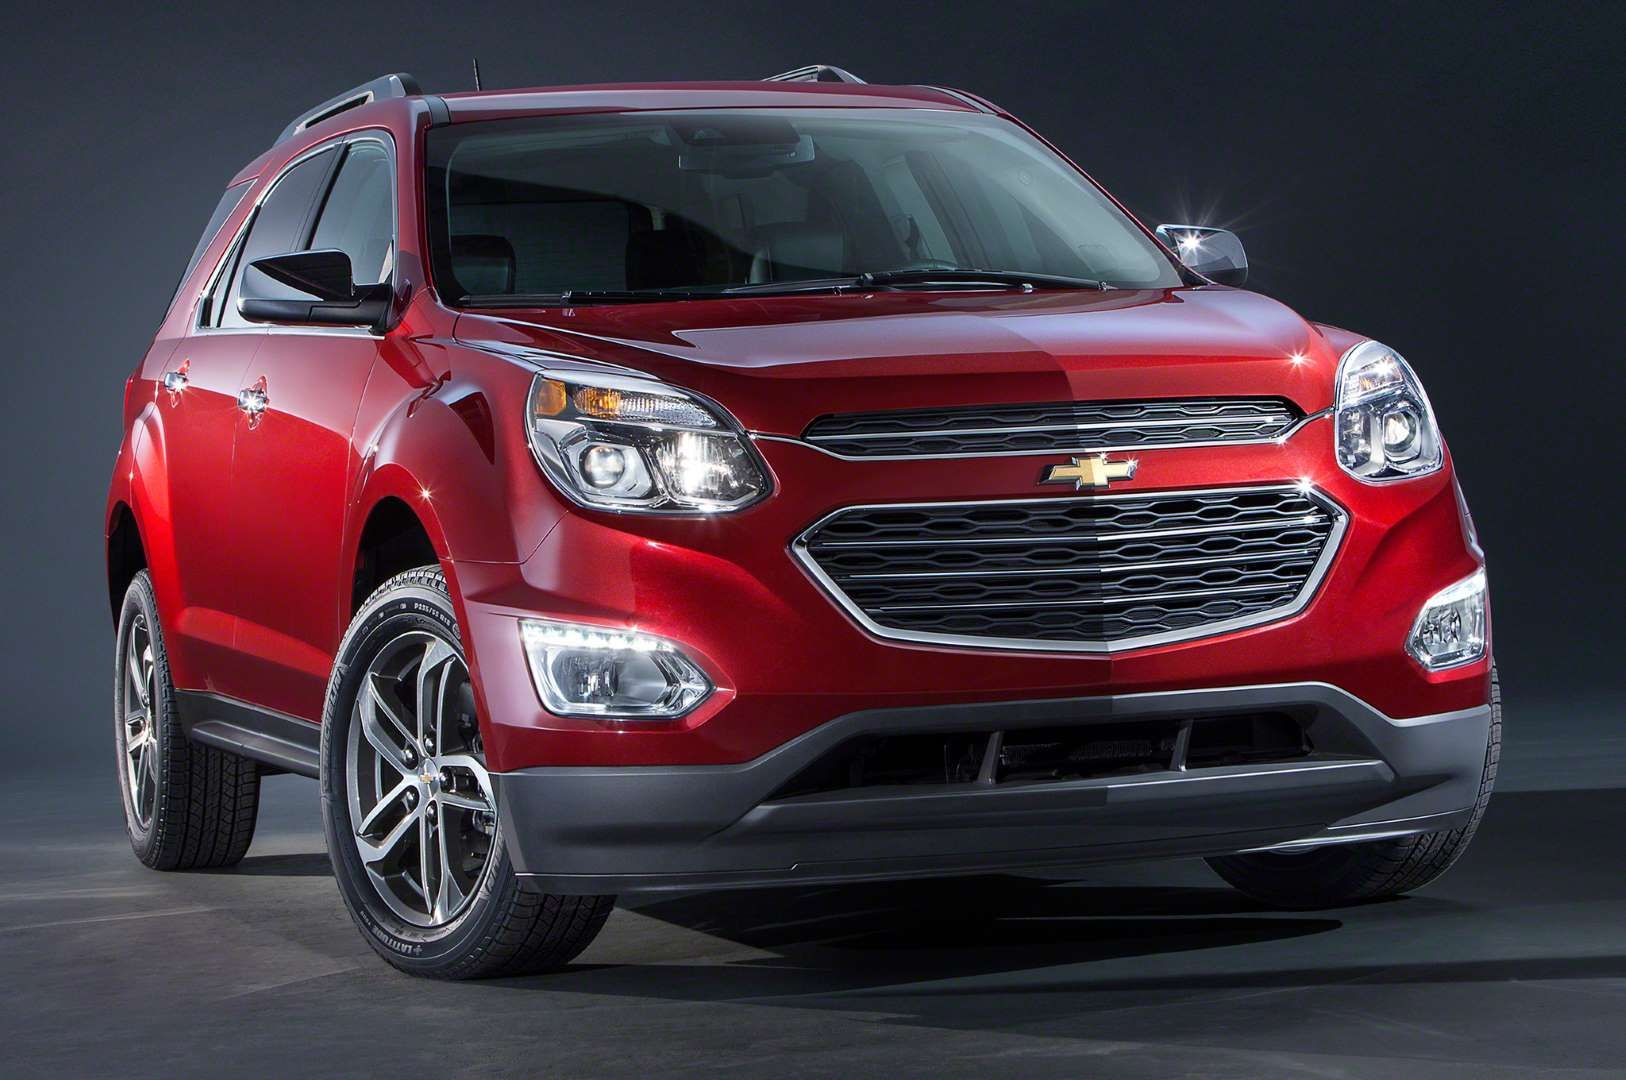 2016 Chevrolet Equinox LTZ - Provided by MotorTrend Latino